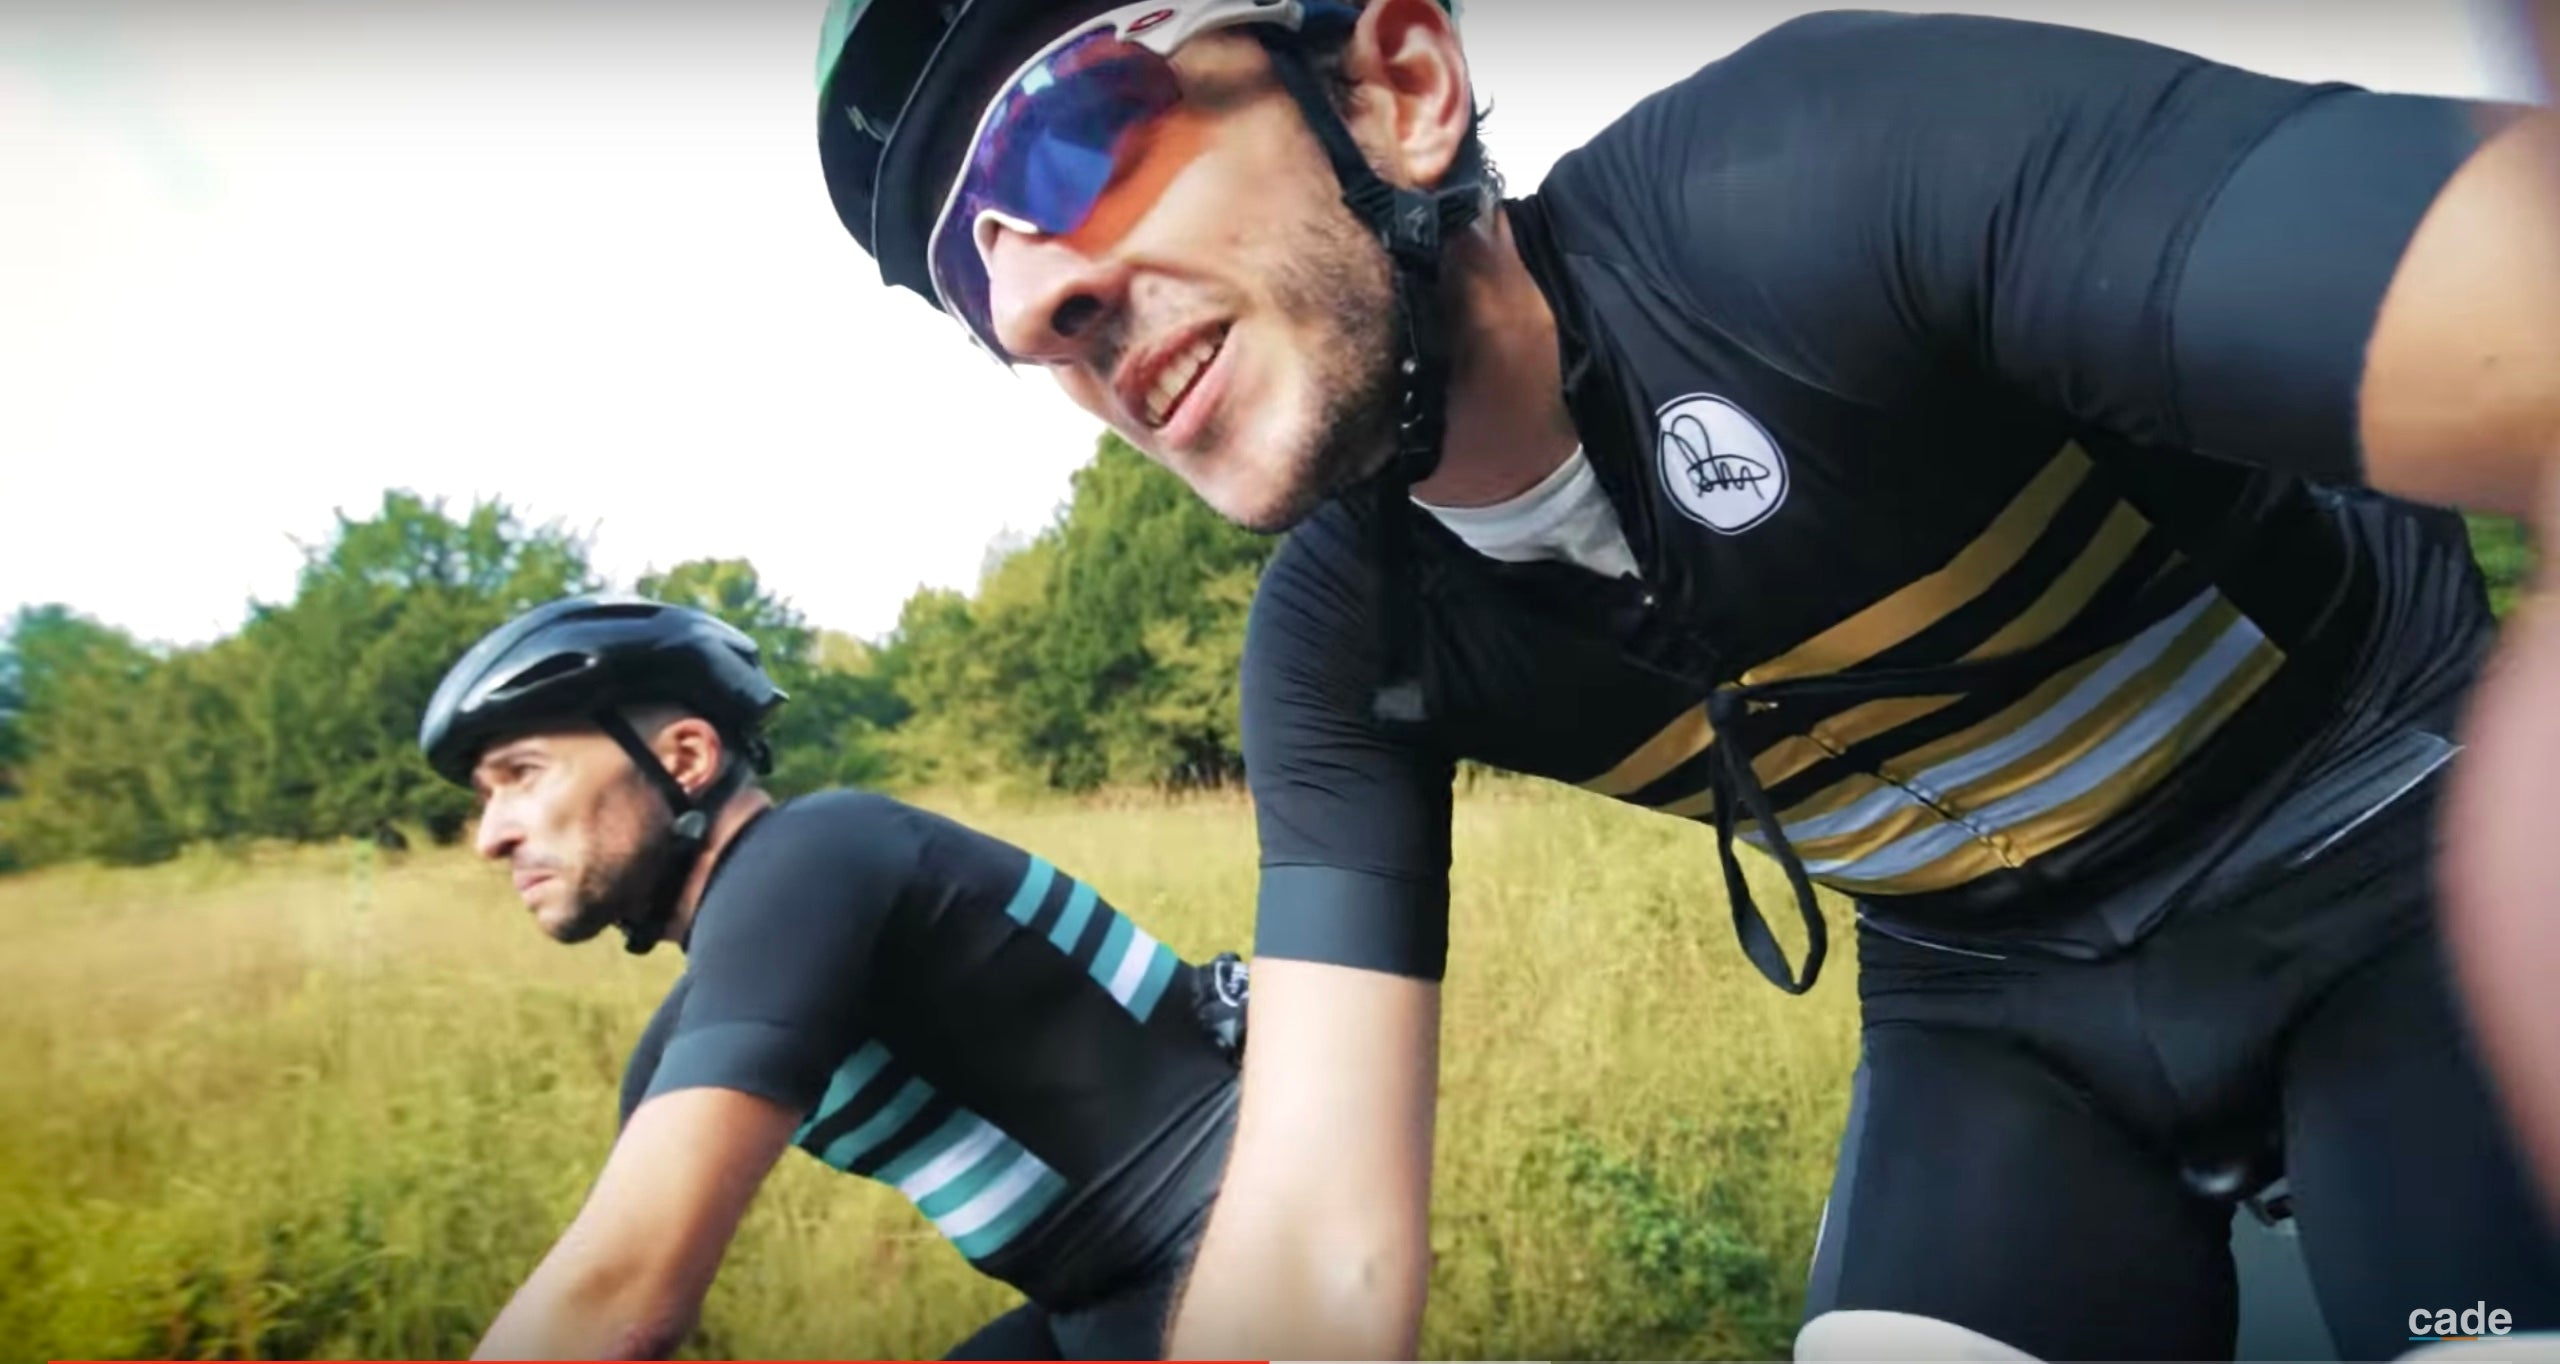 Red Hook Crit videographer Francis Cade rides Box Hill, Surrey, in Attacus Cycling jersey and bib shorts